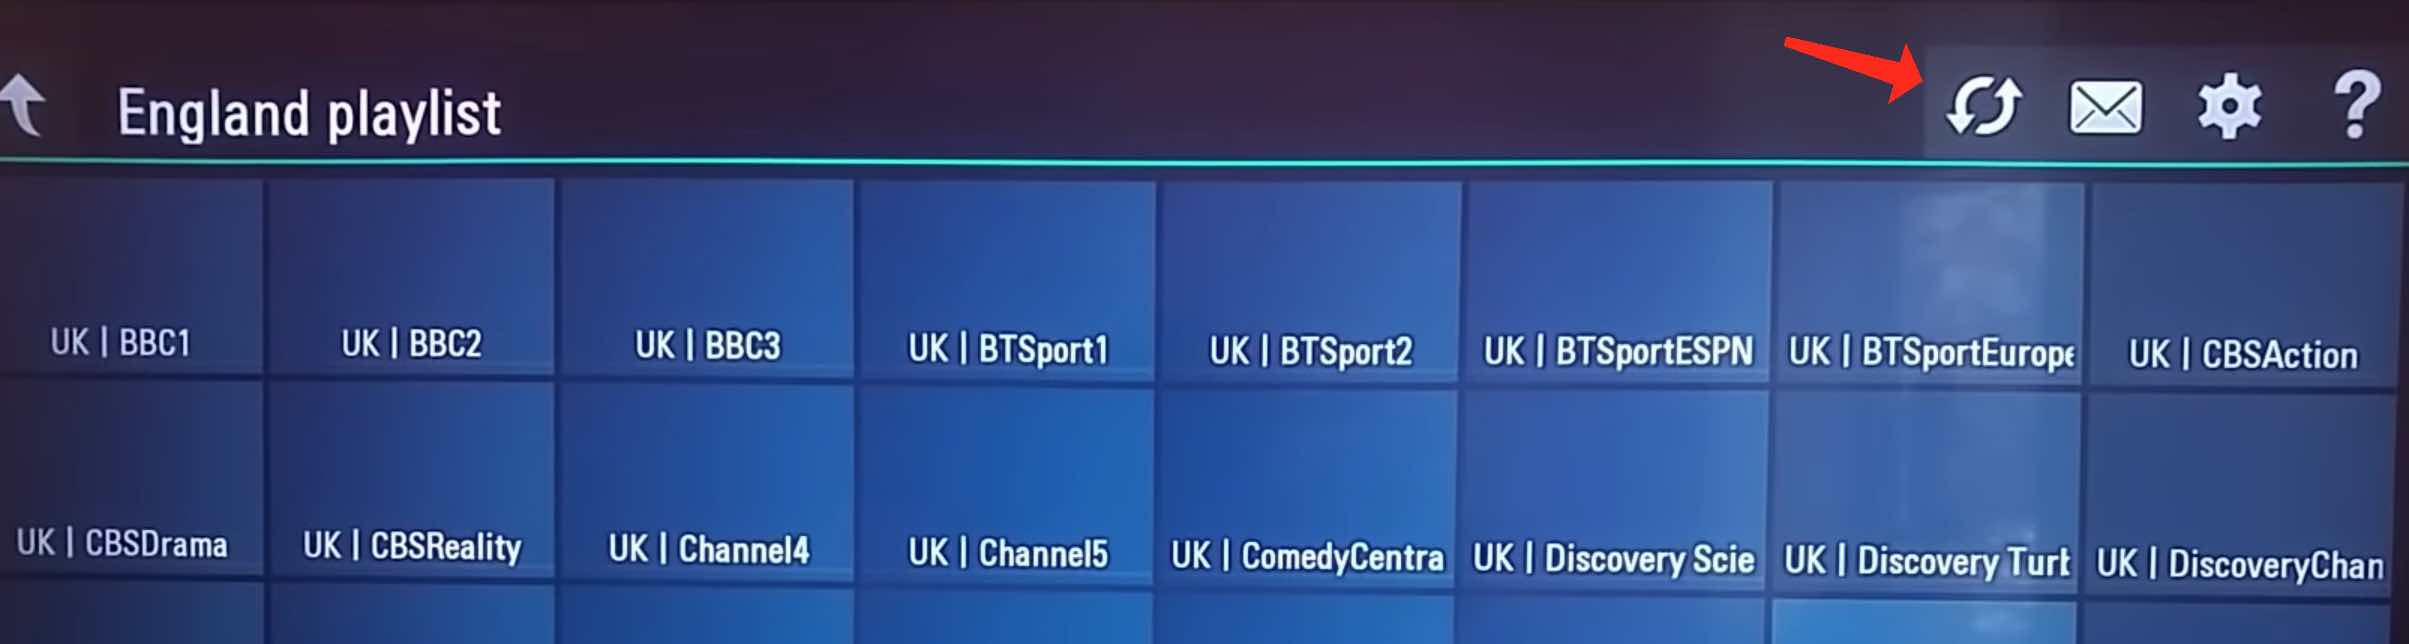 Iptv on LG & samsung TV: App Download, Installation and Viewing